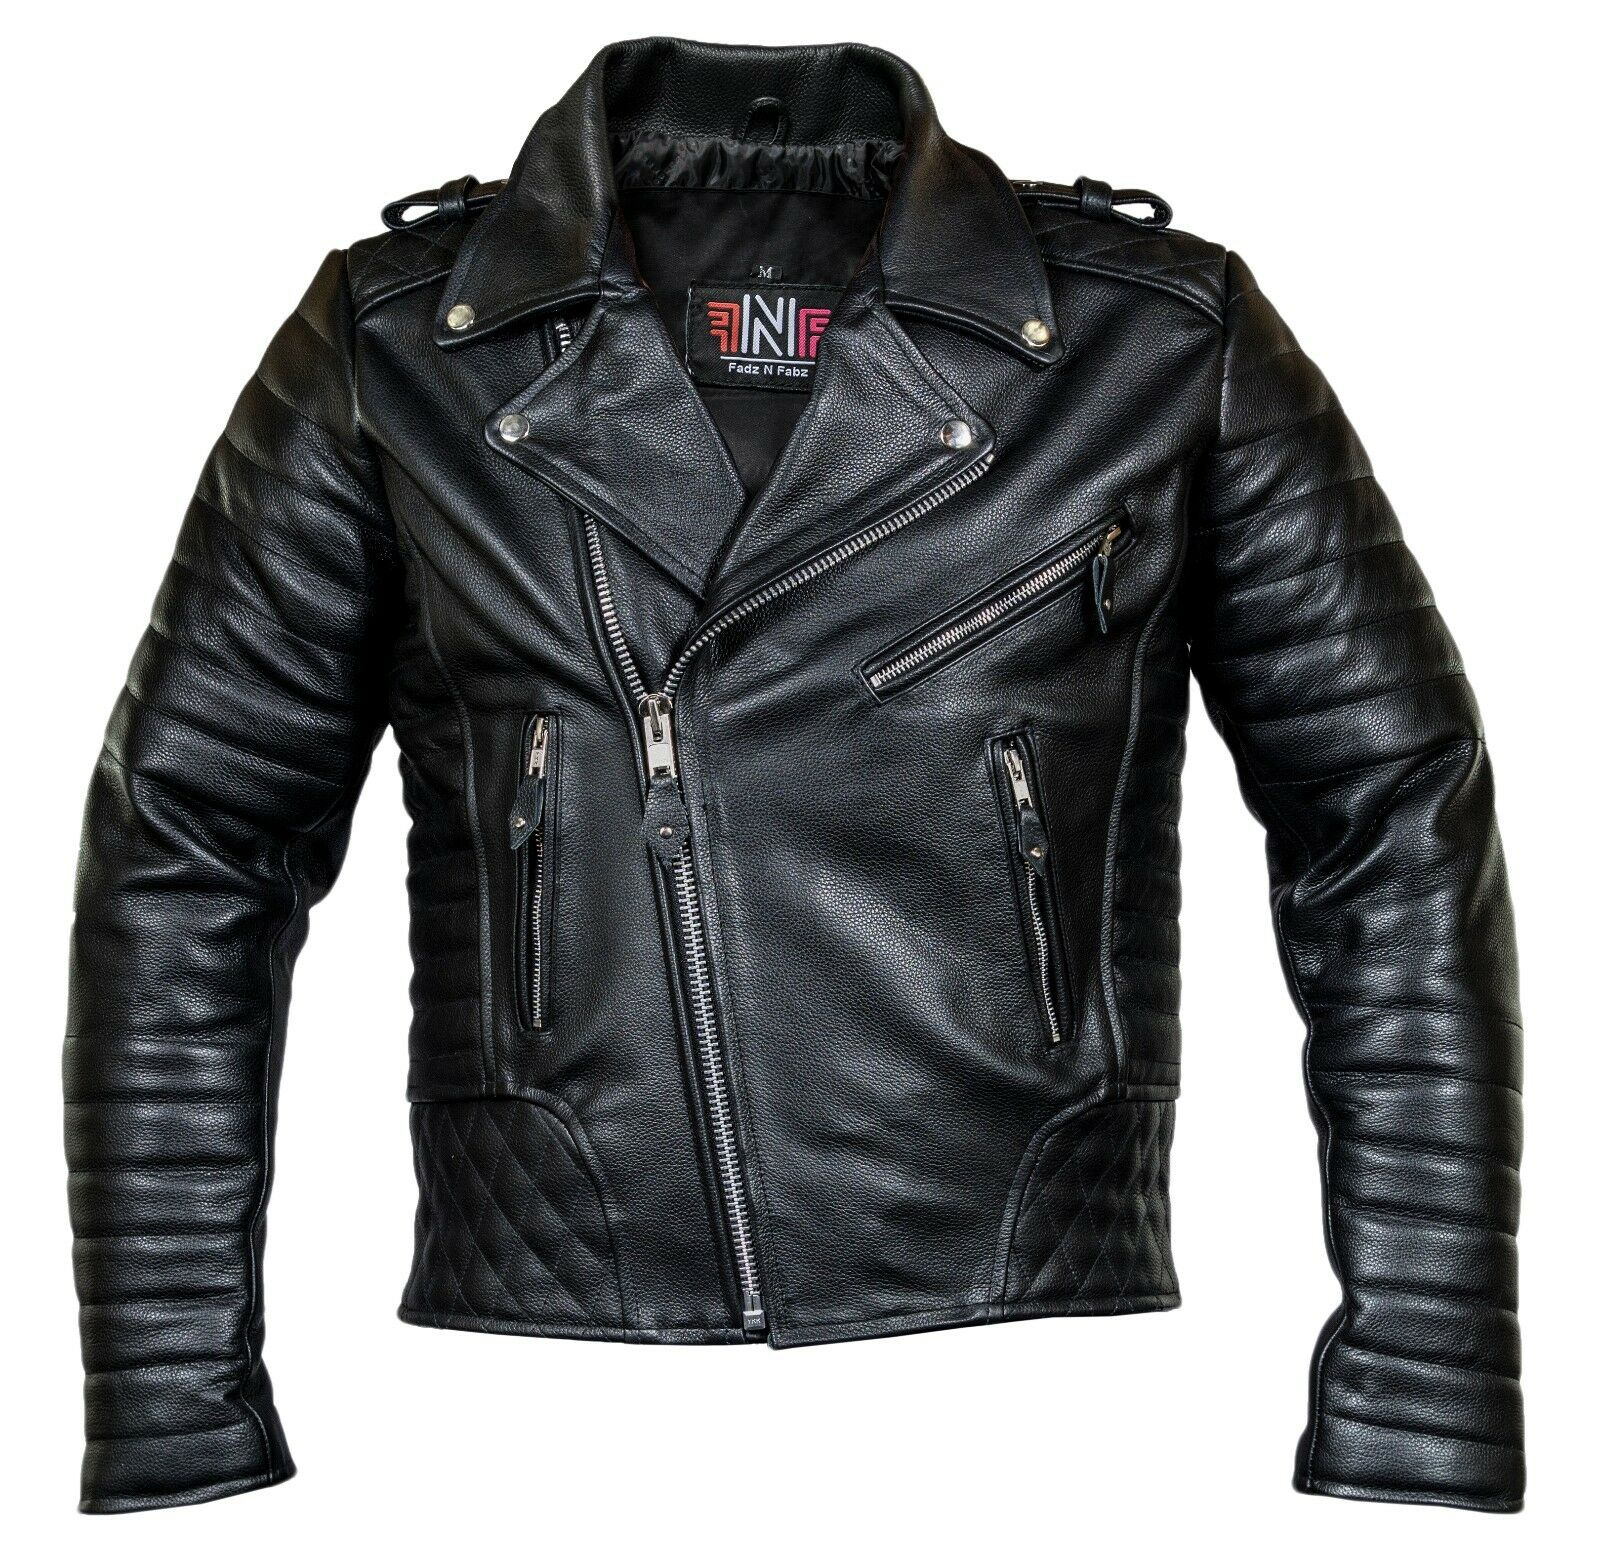 herren motorrad lederjacke biker jacke motorradjacke mit. Black Bedroom Furniture Sets. Home Design Ideas